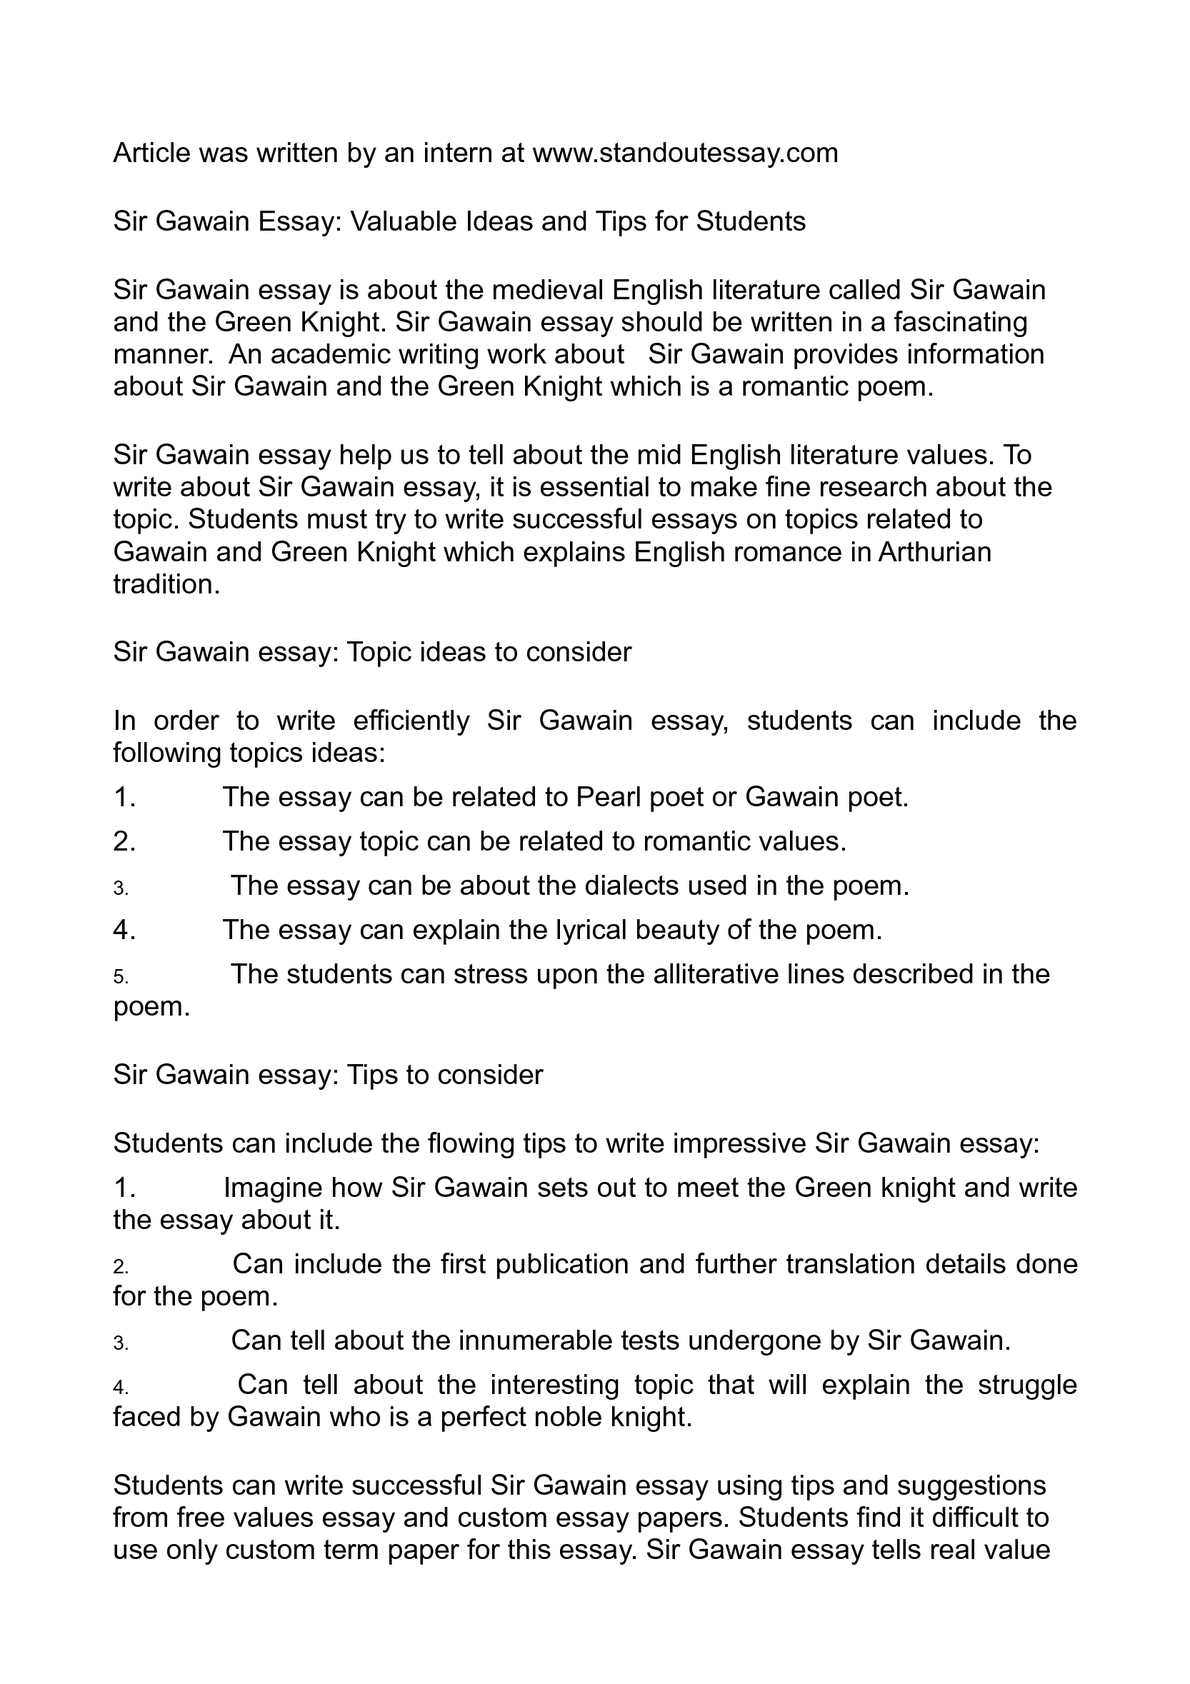 Calamo  Sir Gawain Essay Valuable Ideas And Tips For Students Sir Gawain Essay Valuable Ideas And Tips For Students